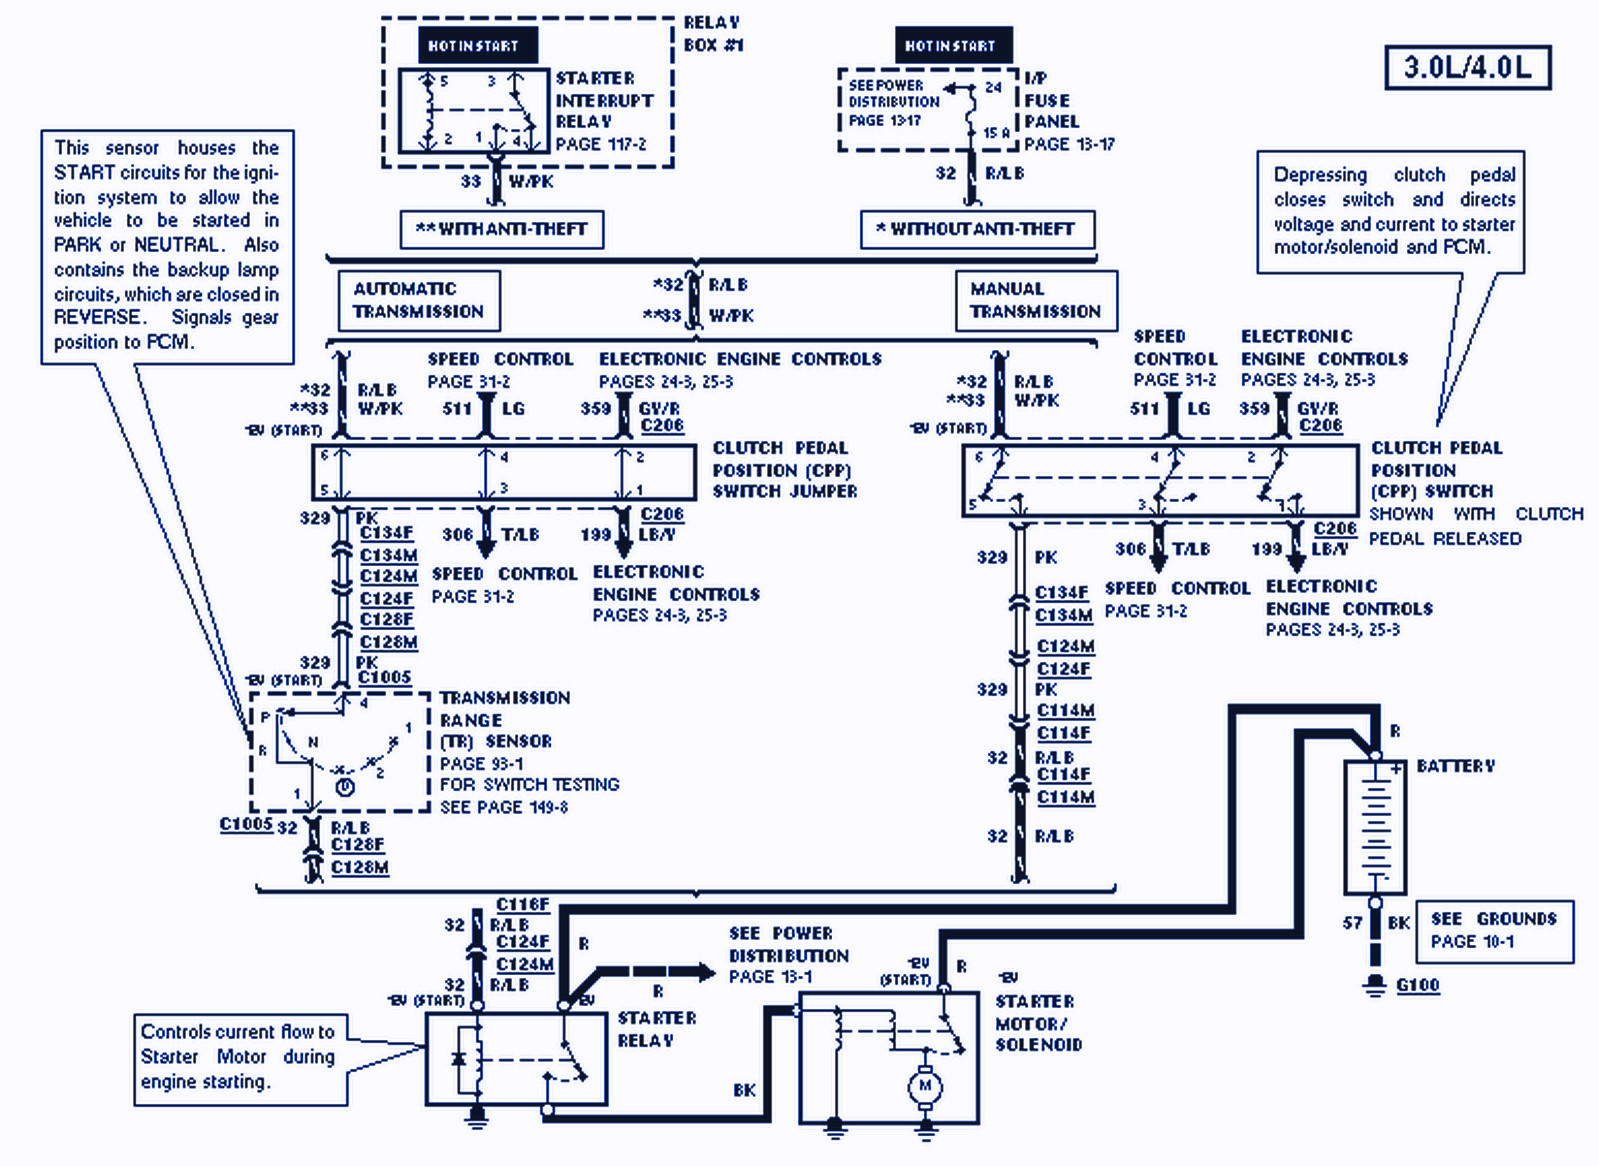 1995 ford ranger wiring diagram wiring and schematic1995 ford ranger wiring diagram [ 1599 x 1166 Pixel ]